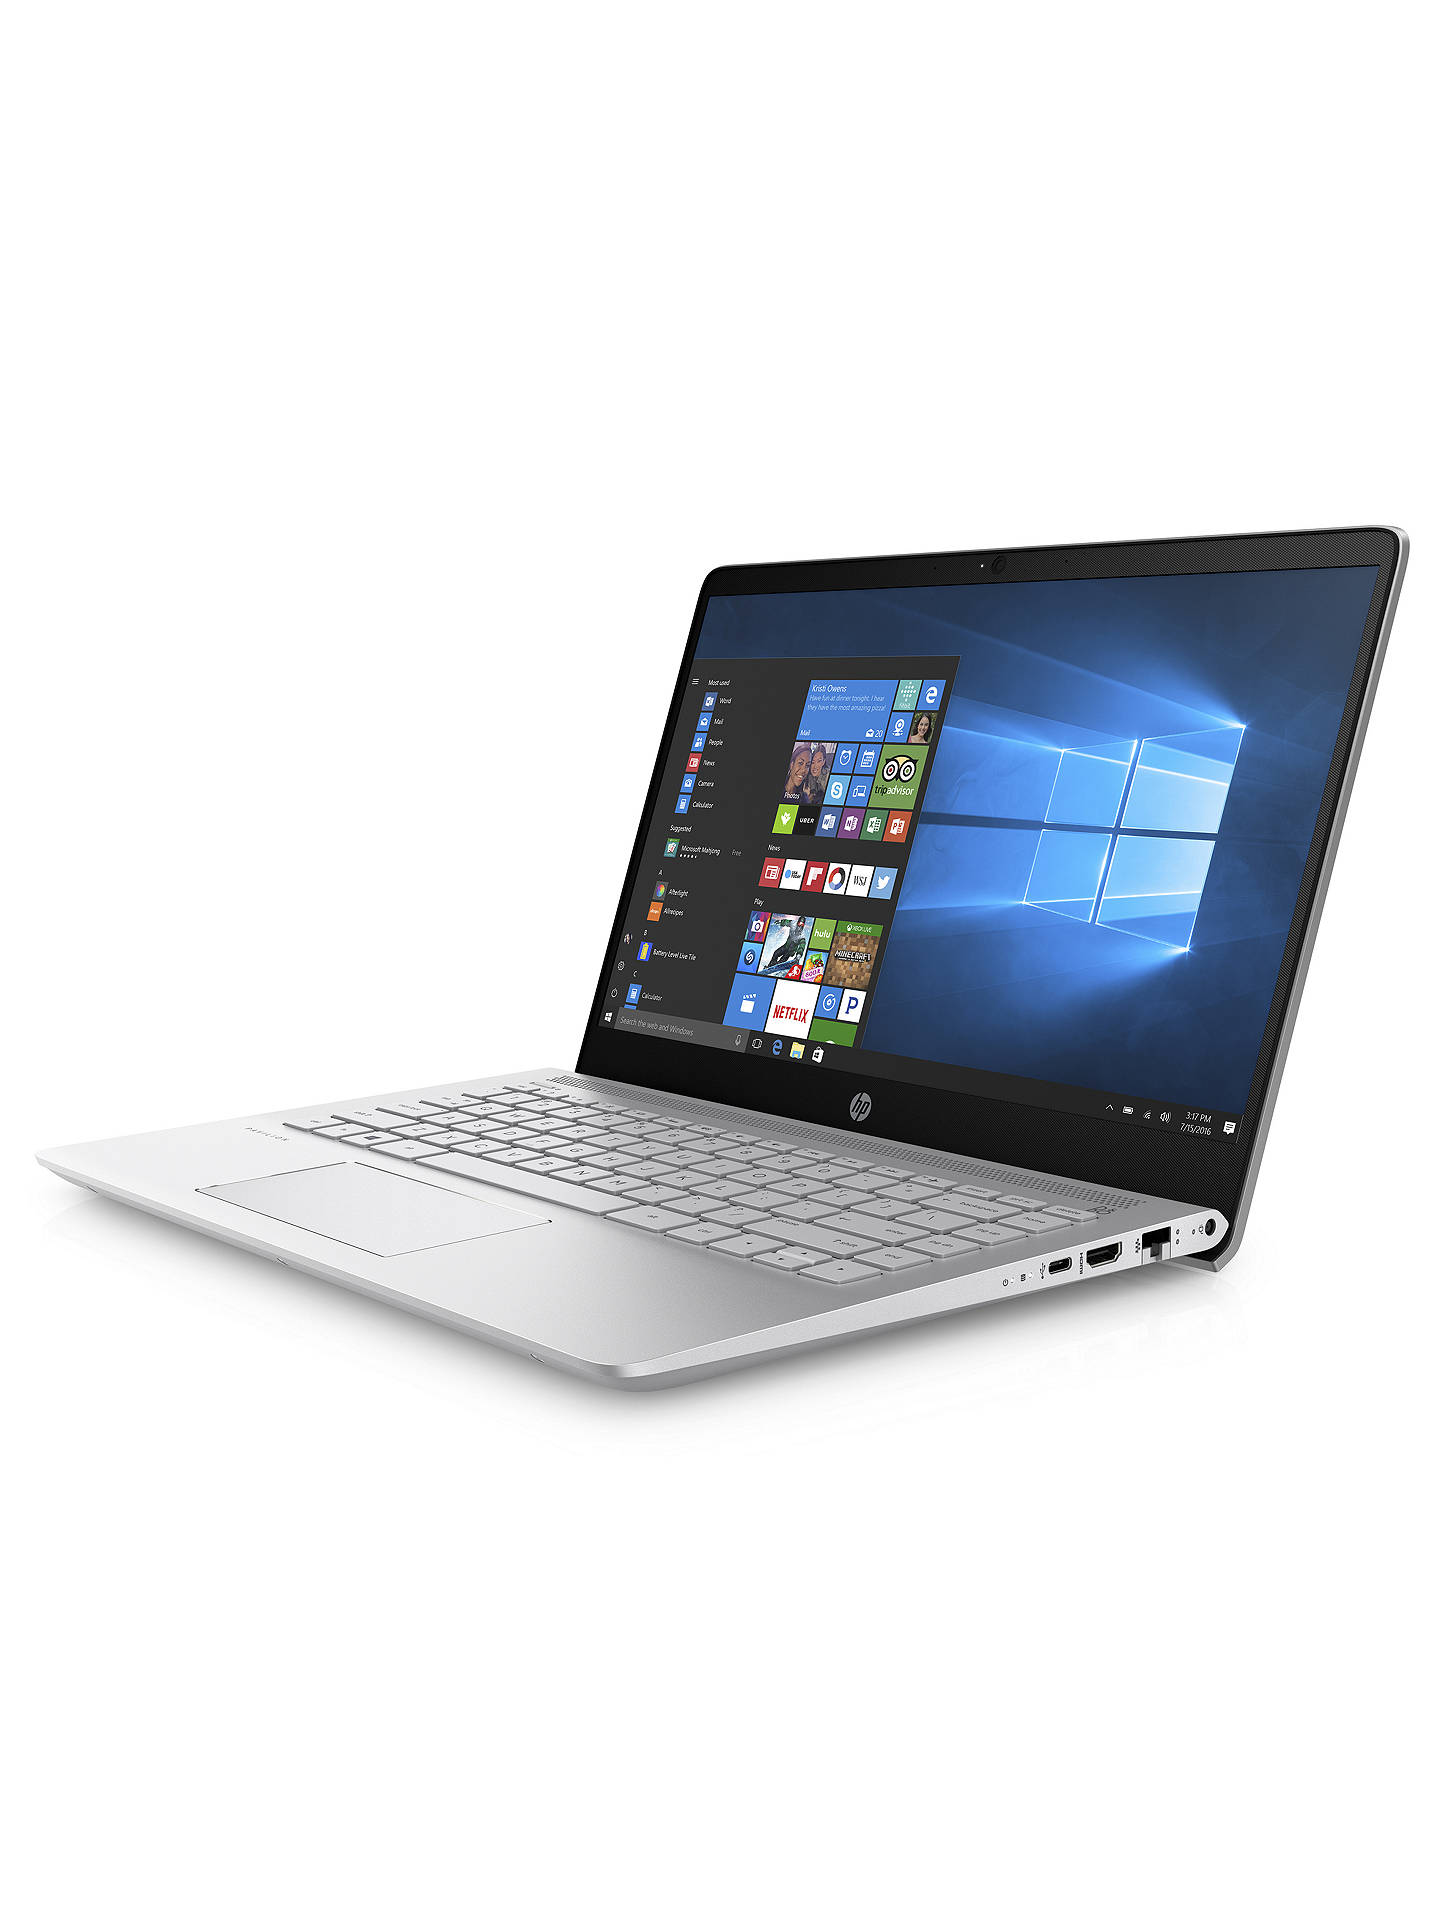 "Buy HP Pavilion Pro 14-bf010na Laptop, Intel Core i7, 8GB, 256GB M.2 SSD, NVIDIA GeForce 940MX, 14"", Mineral Silver Online at johnlewis.com"